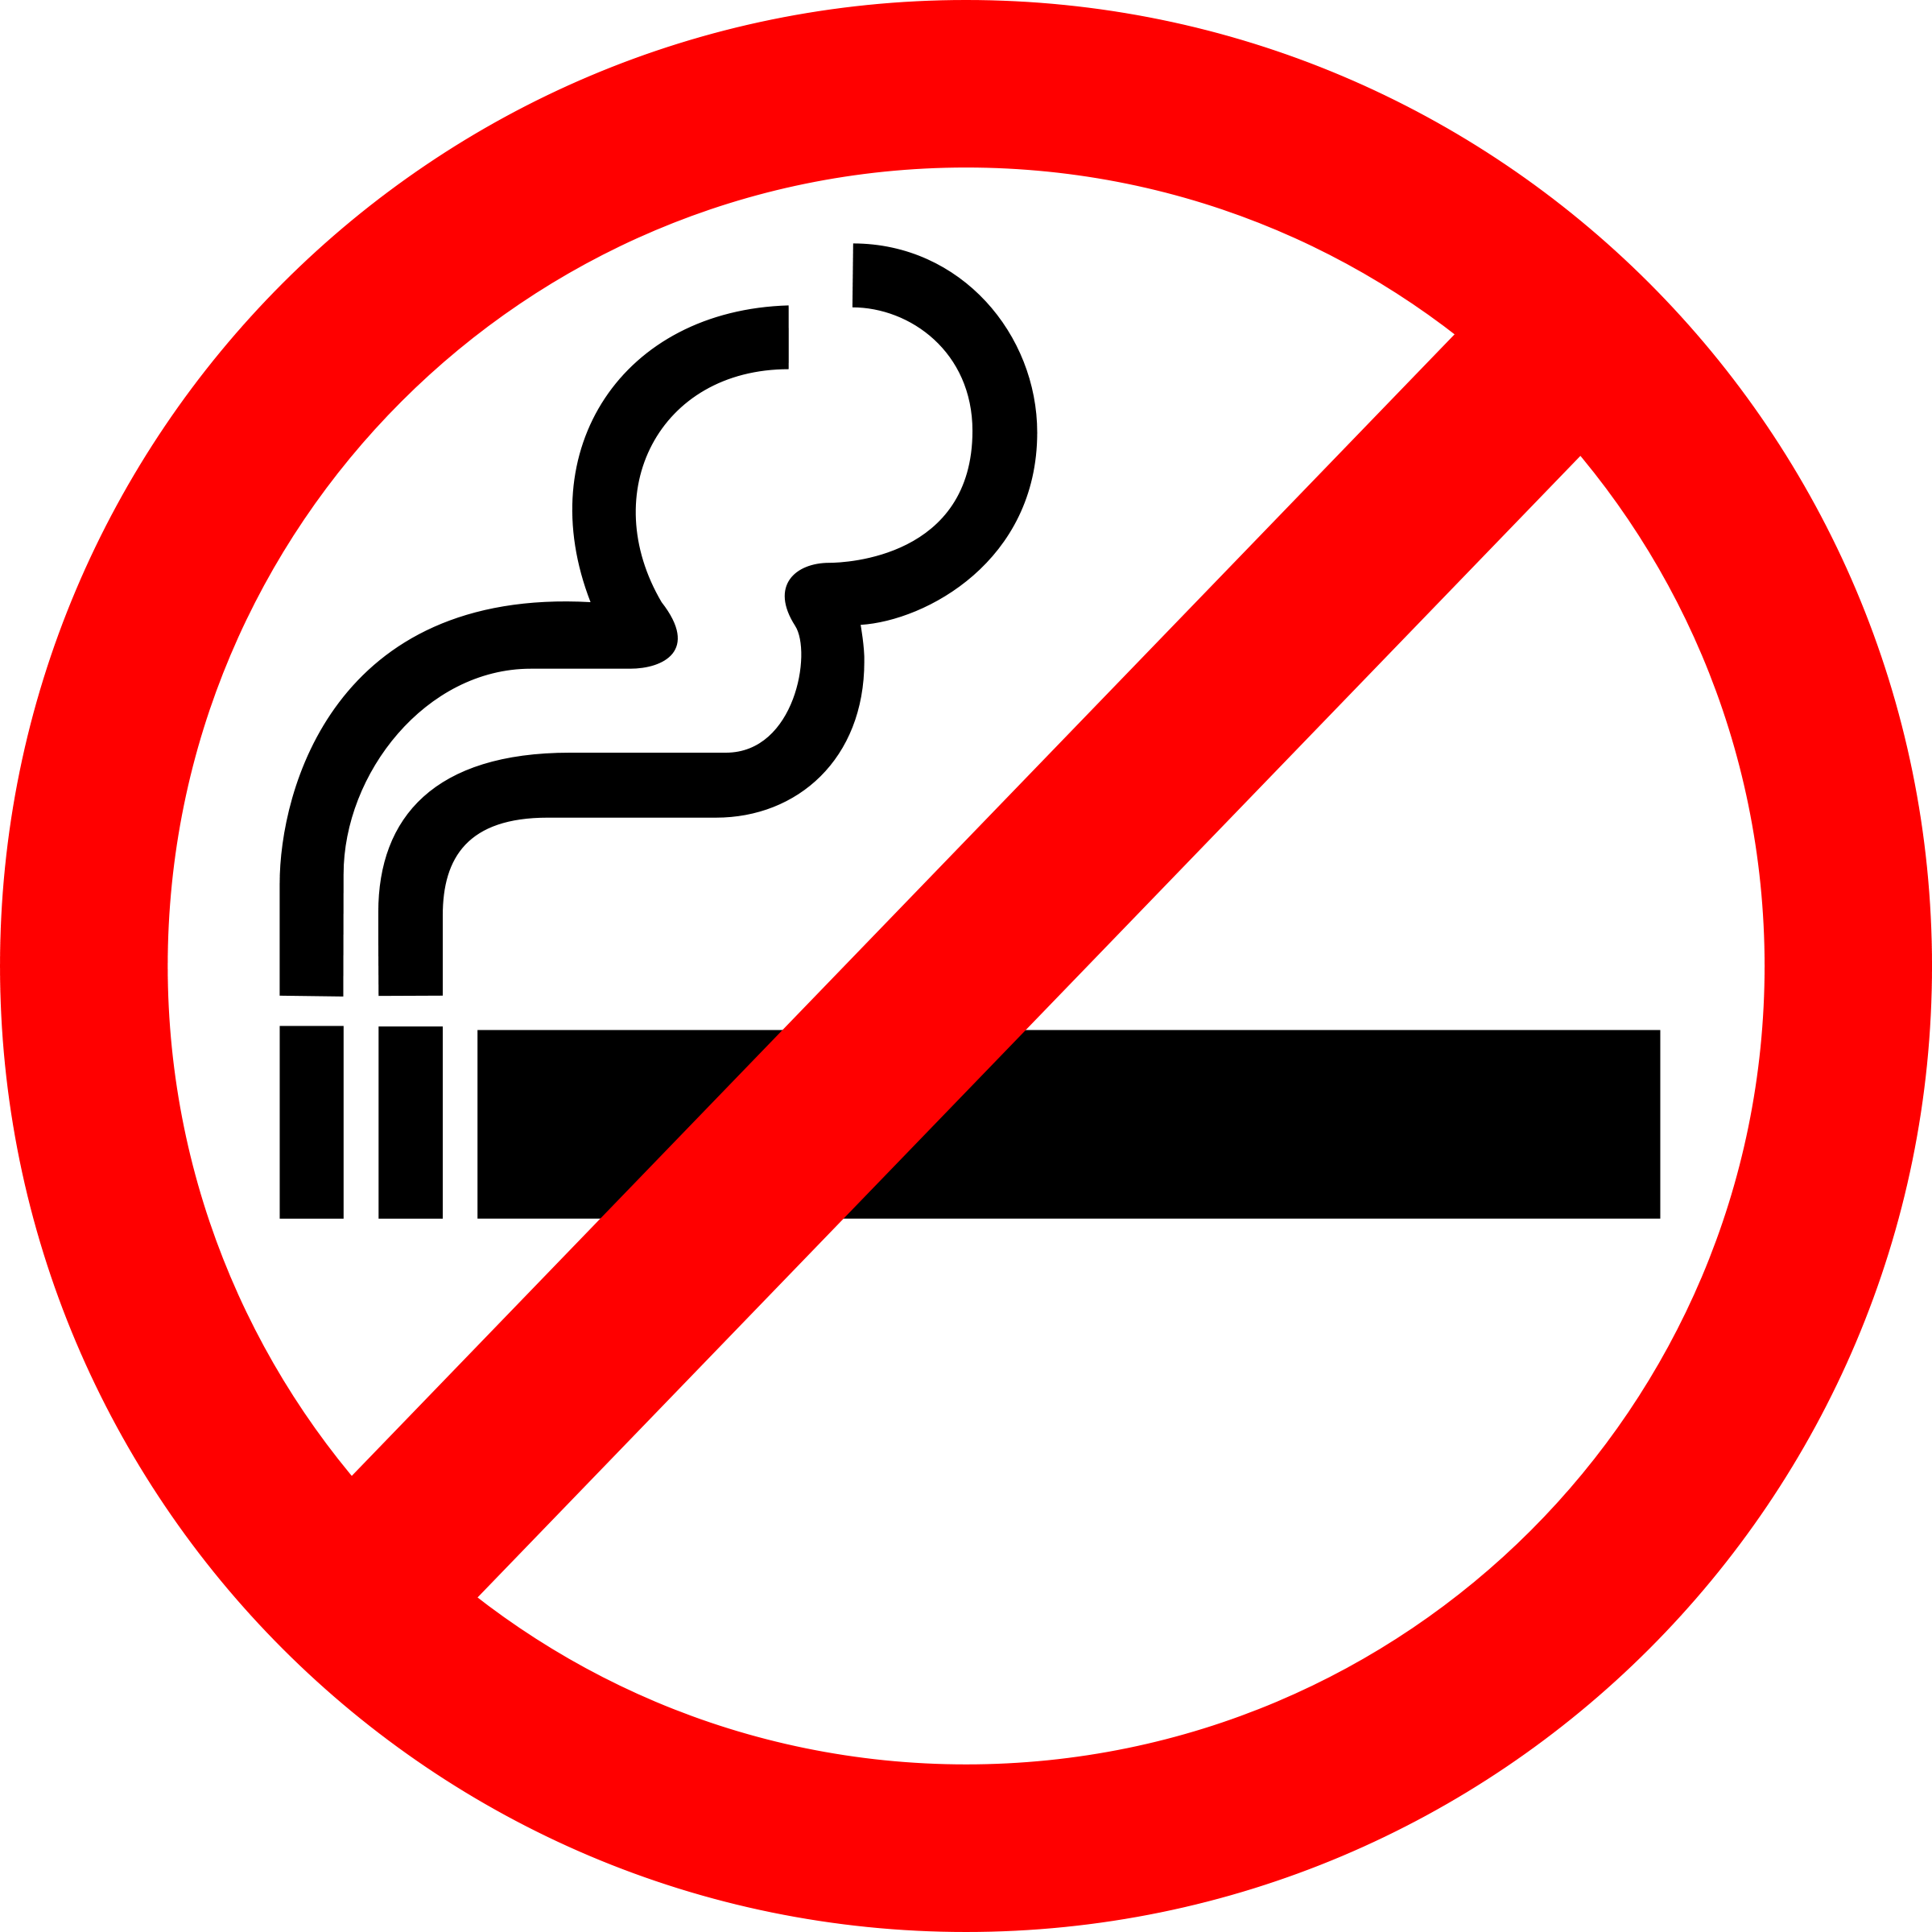 Tool clipart plastic surgery. E cigarettes slow recovery